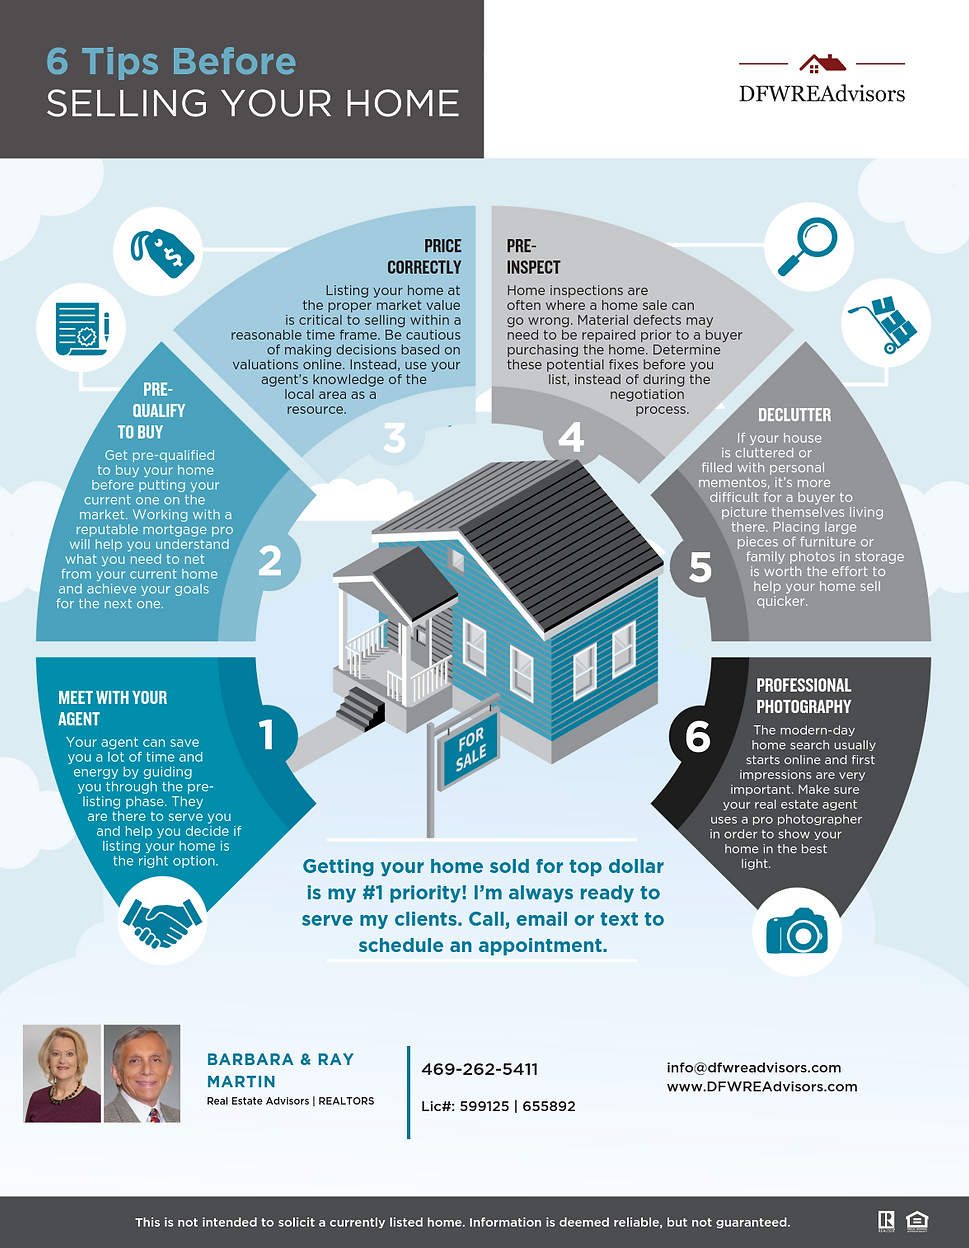 6-Tips-Before-Selling-Your-Home-Plus-179